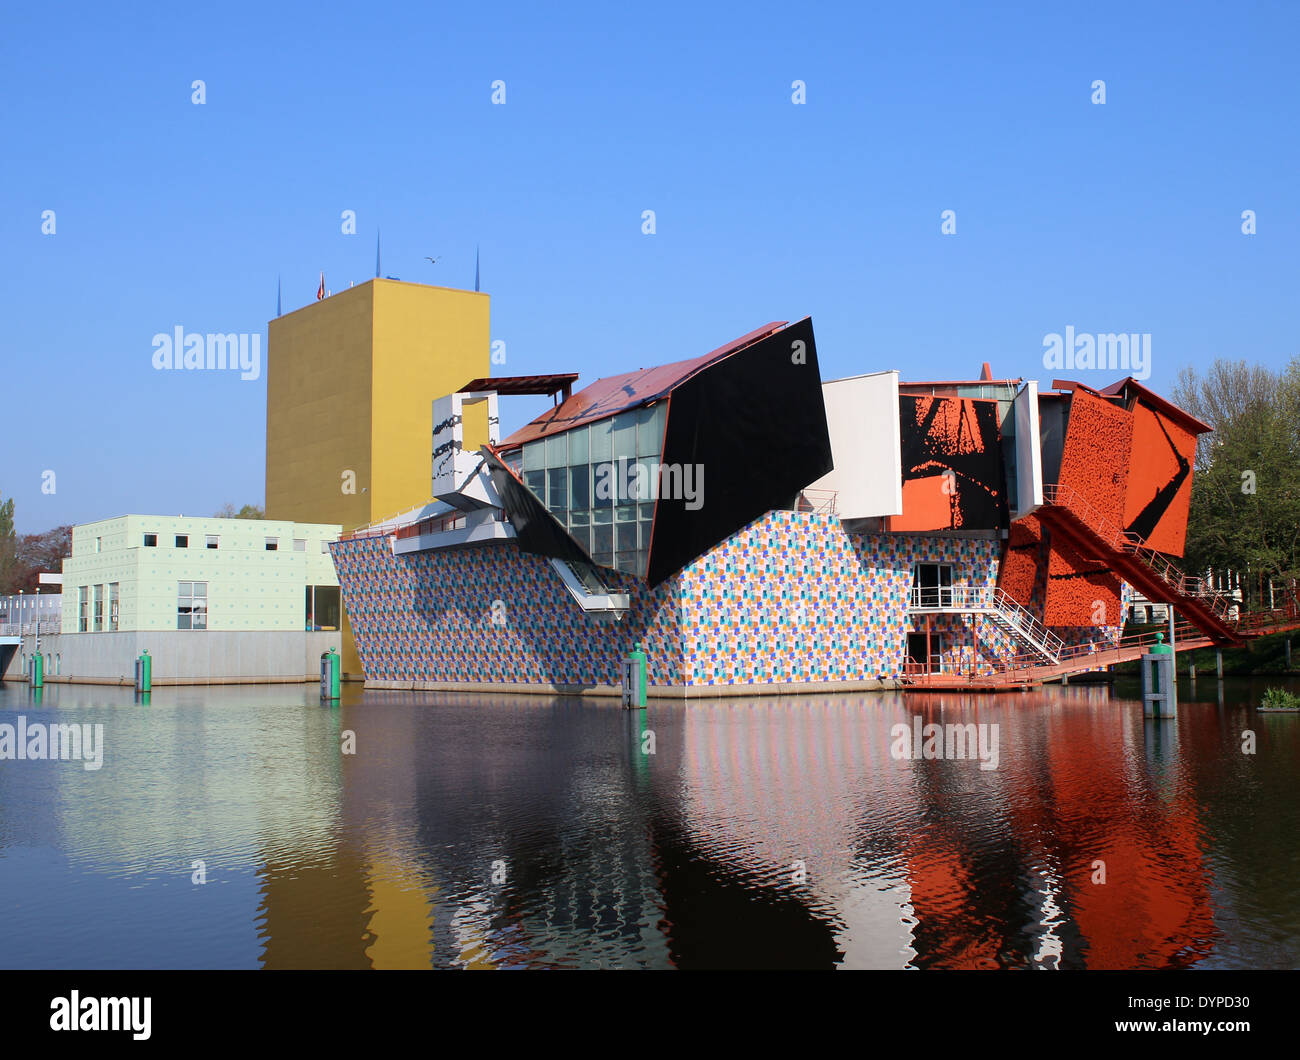 groninger museum the modernist contemporary art museum in groningen stock photo royalty free. Black Bedroom Furniture Sets. Home Design Ideas